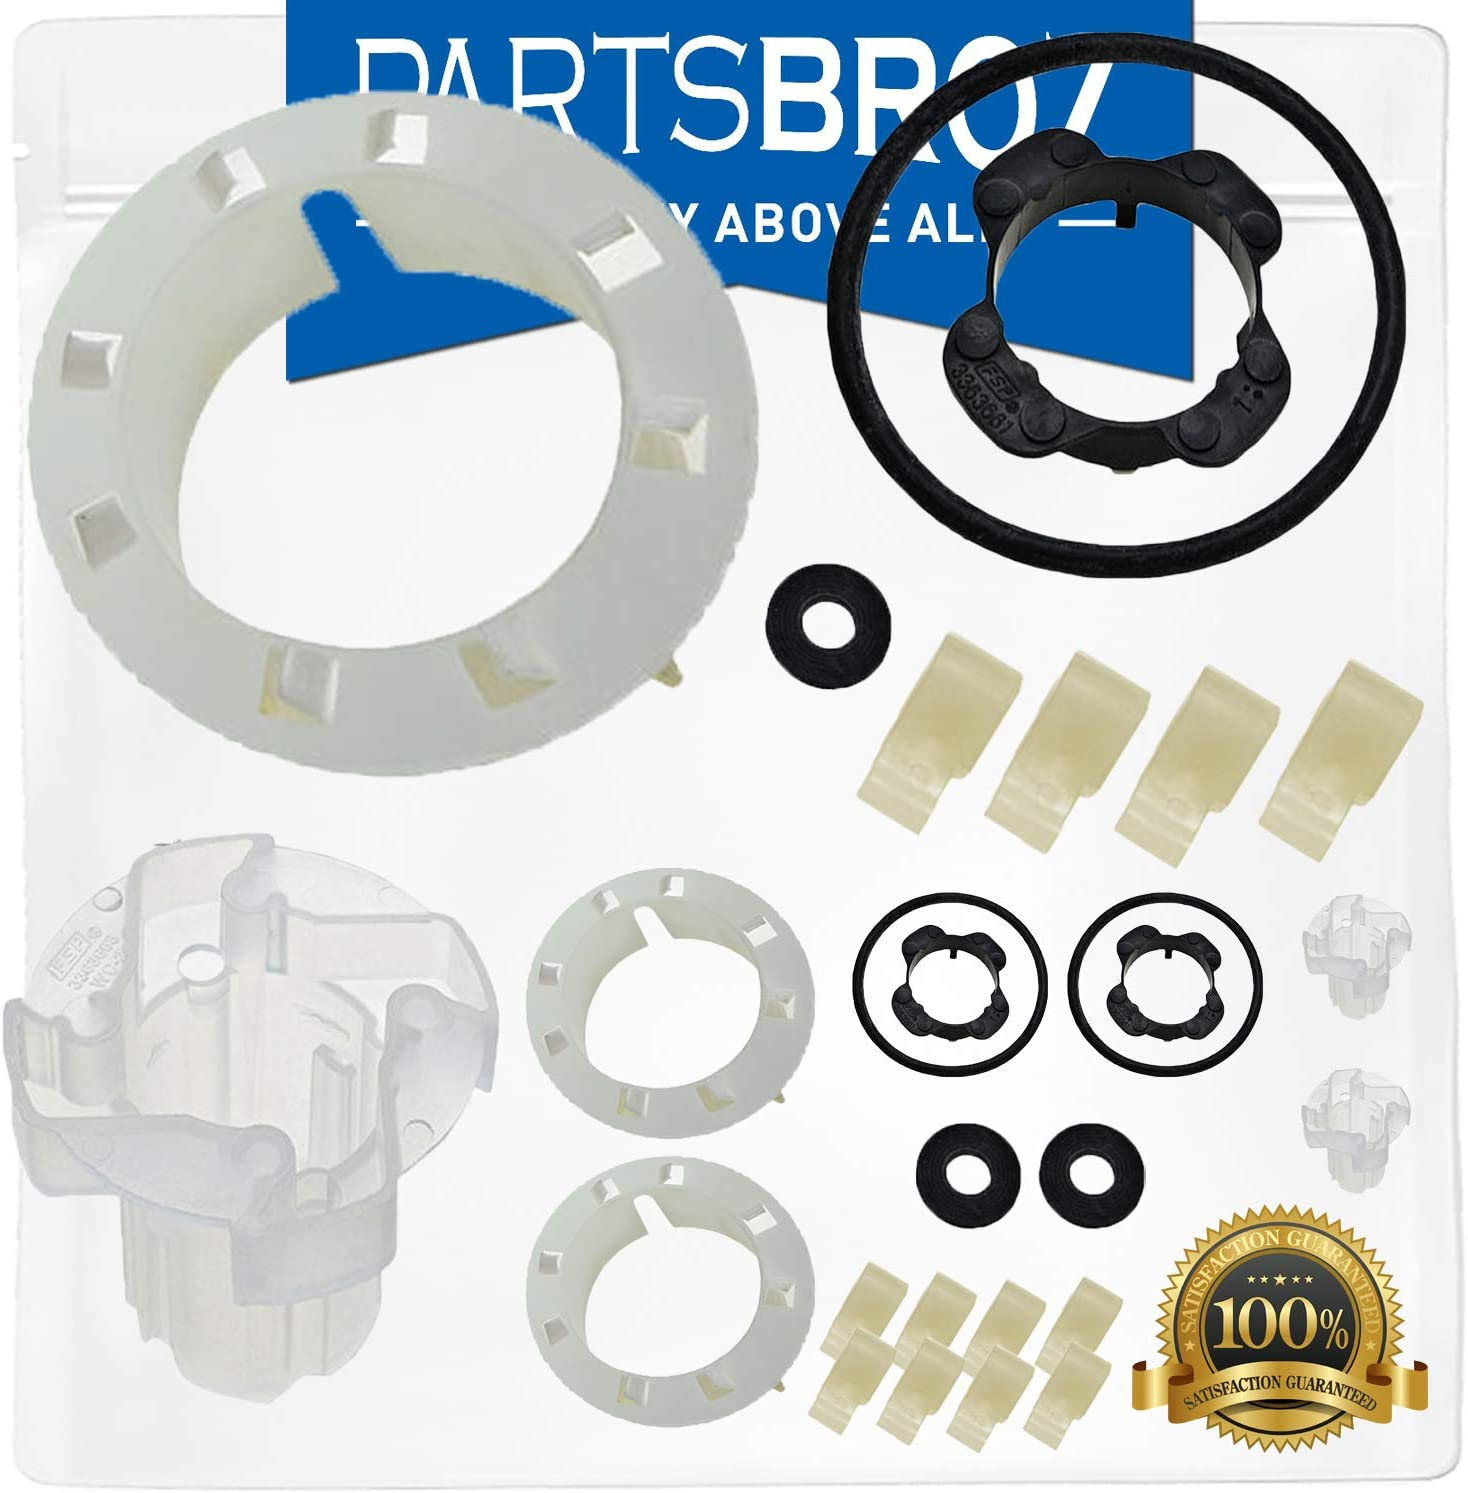 285811 Agitator Repair Kit (2-Pack) by PartsBroz - Compatible with Whirlpool Washers - Replaces AP3138838, 2744, 285746, 285811VP, 3347410, 3351001, 3363663, 3948431, AH334650, EA334650, PS334650